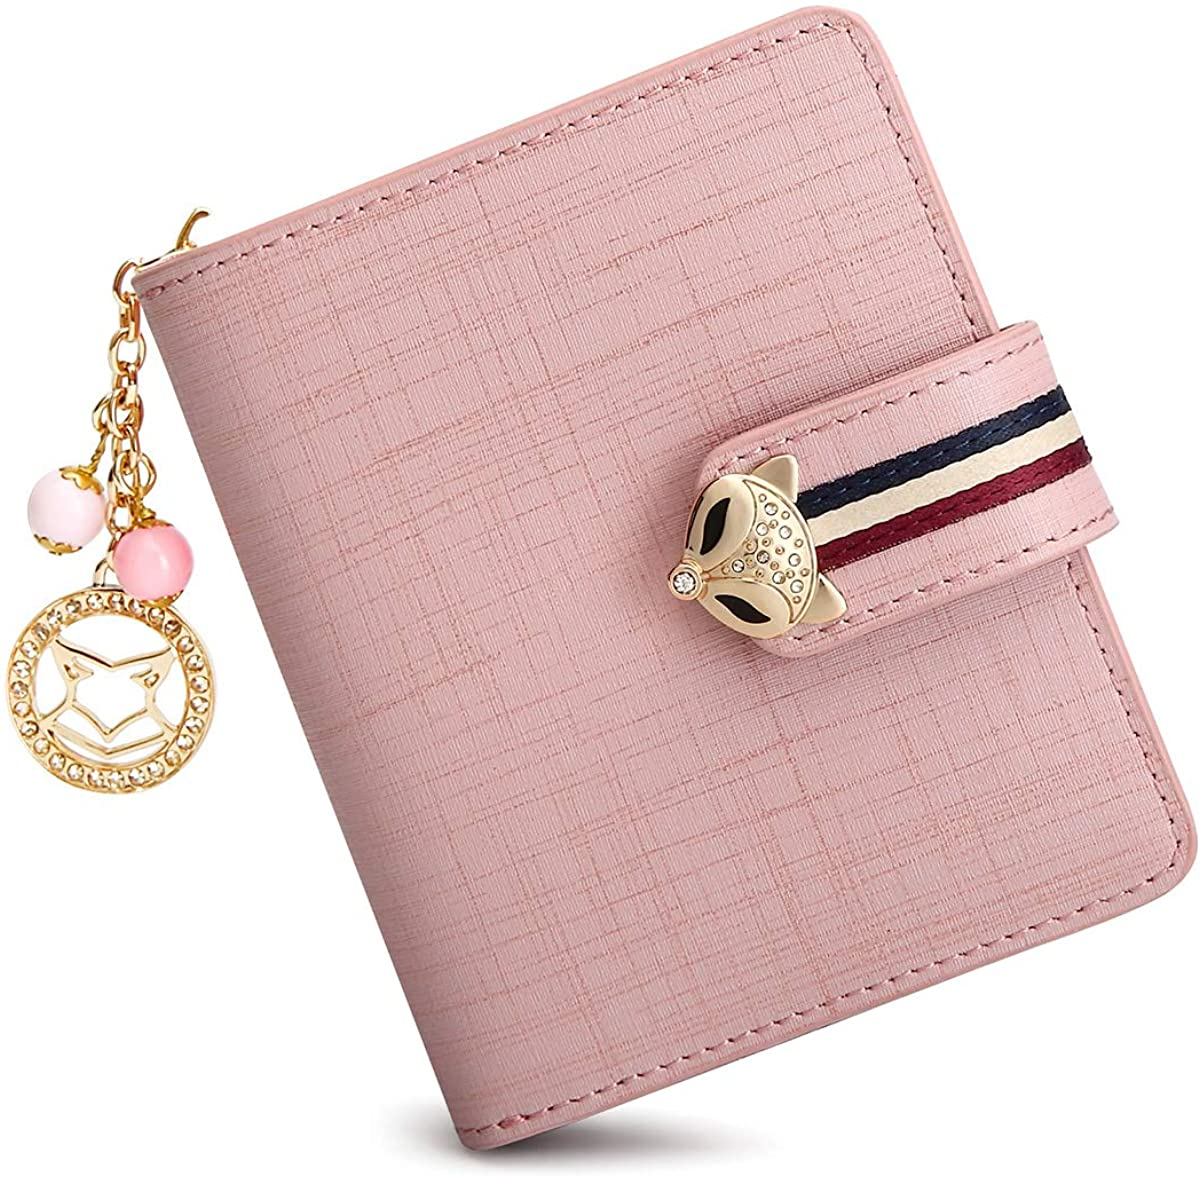 FOXER Small Wallets for Women Selling and selling gift Cute Ladies Credit Purses Zipper